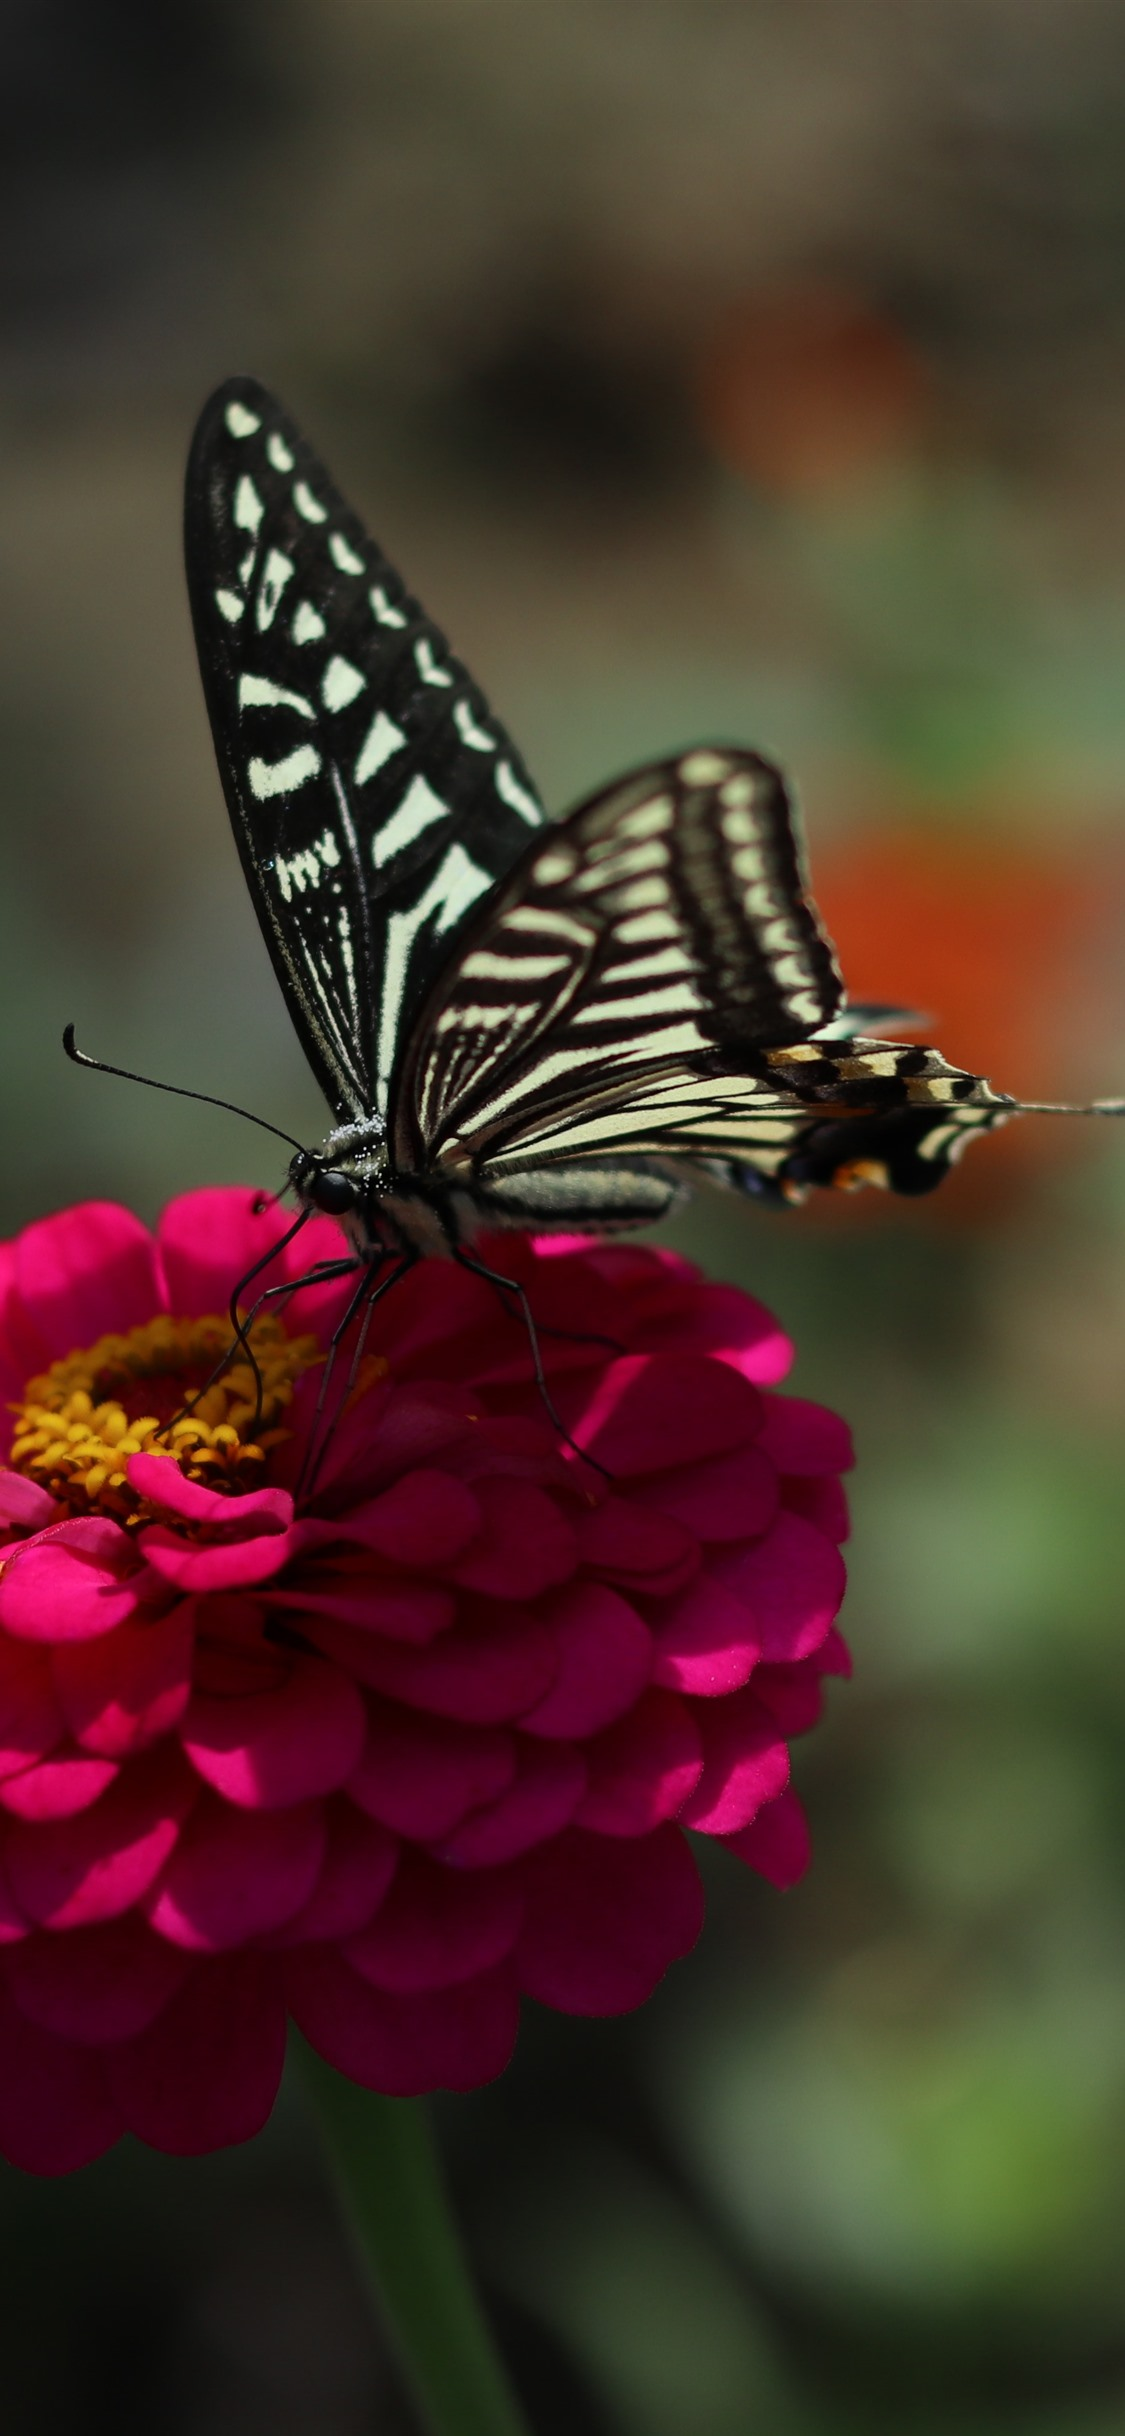 Pink Flower Black Butterfly Spring 1125x2436 Iphone 11 Pro Xs X Wallpaper Background Picture Image